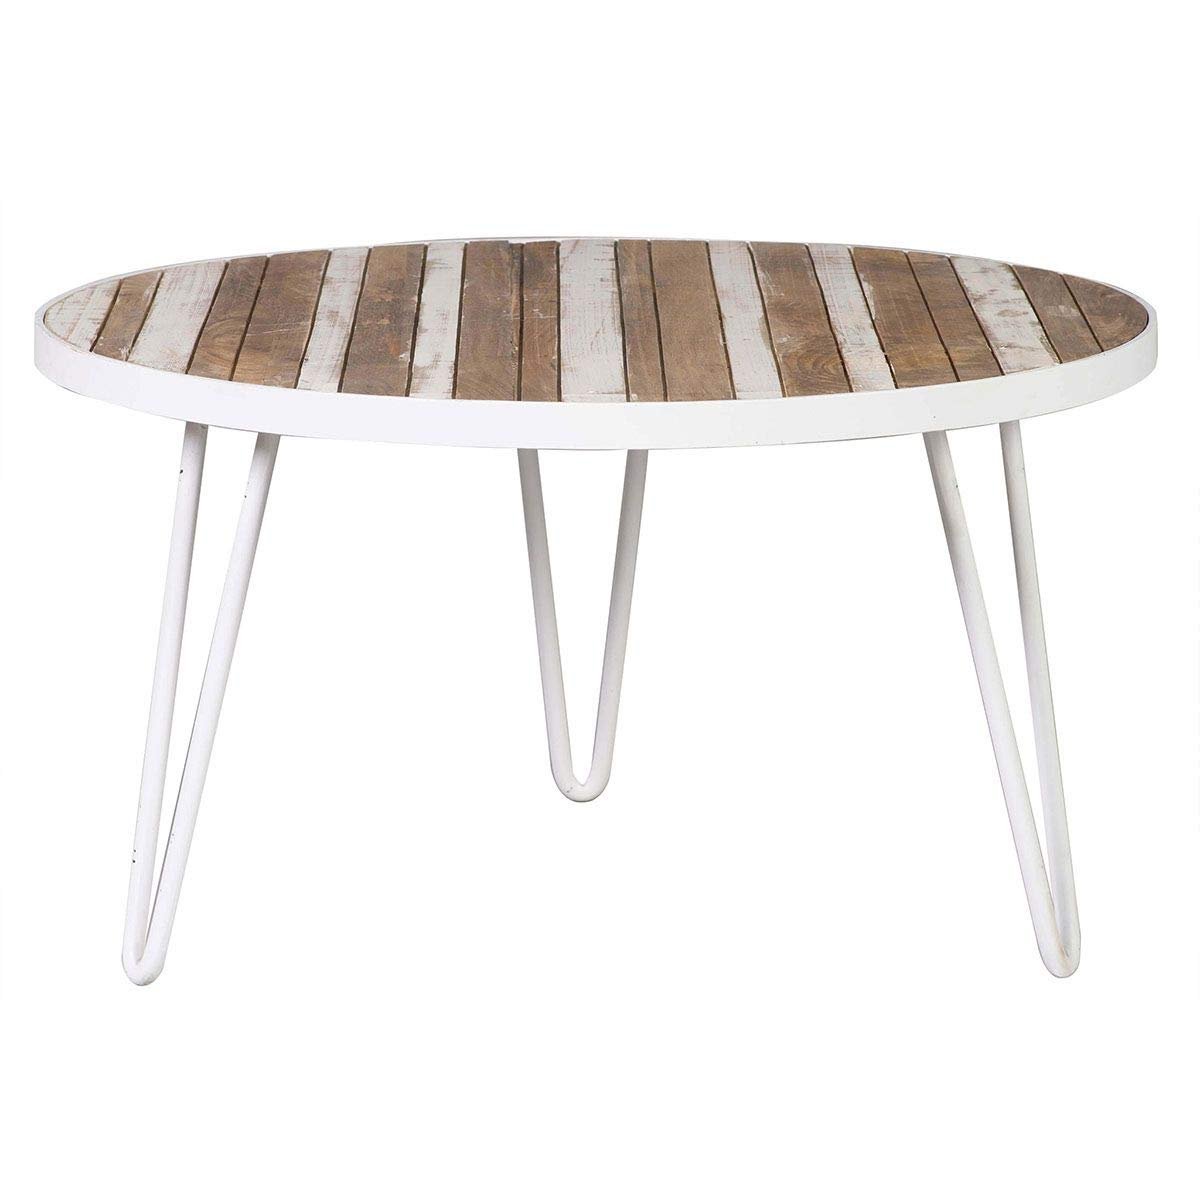 Miliboo Table Round Wood And Metal White 80 X 45 Rochelle